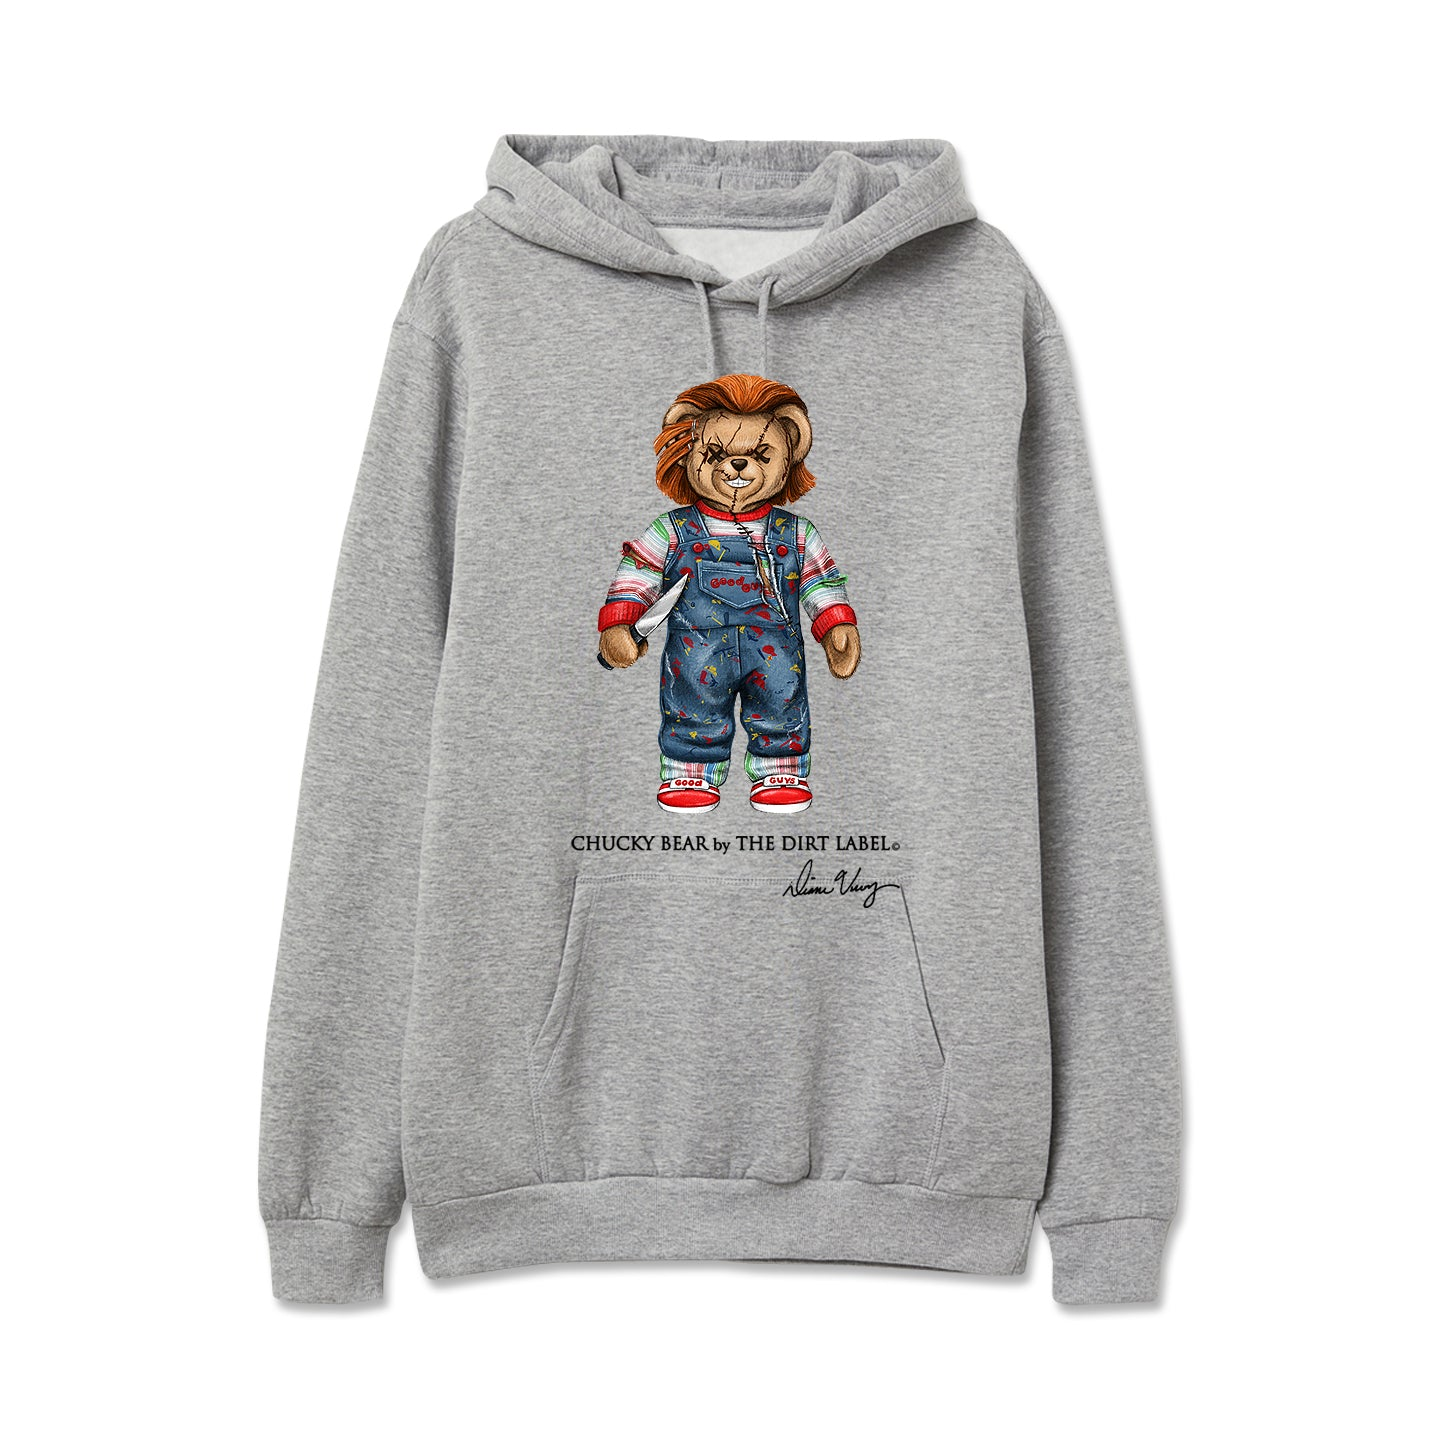 Chucky Bear Hoodie (Grey - Limited Edition)